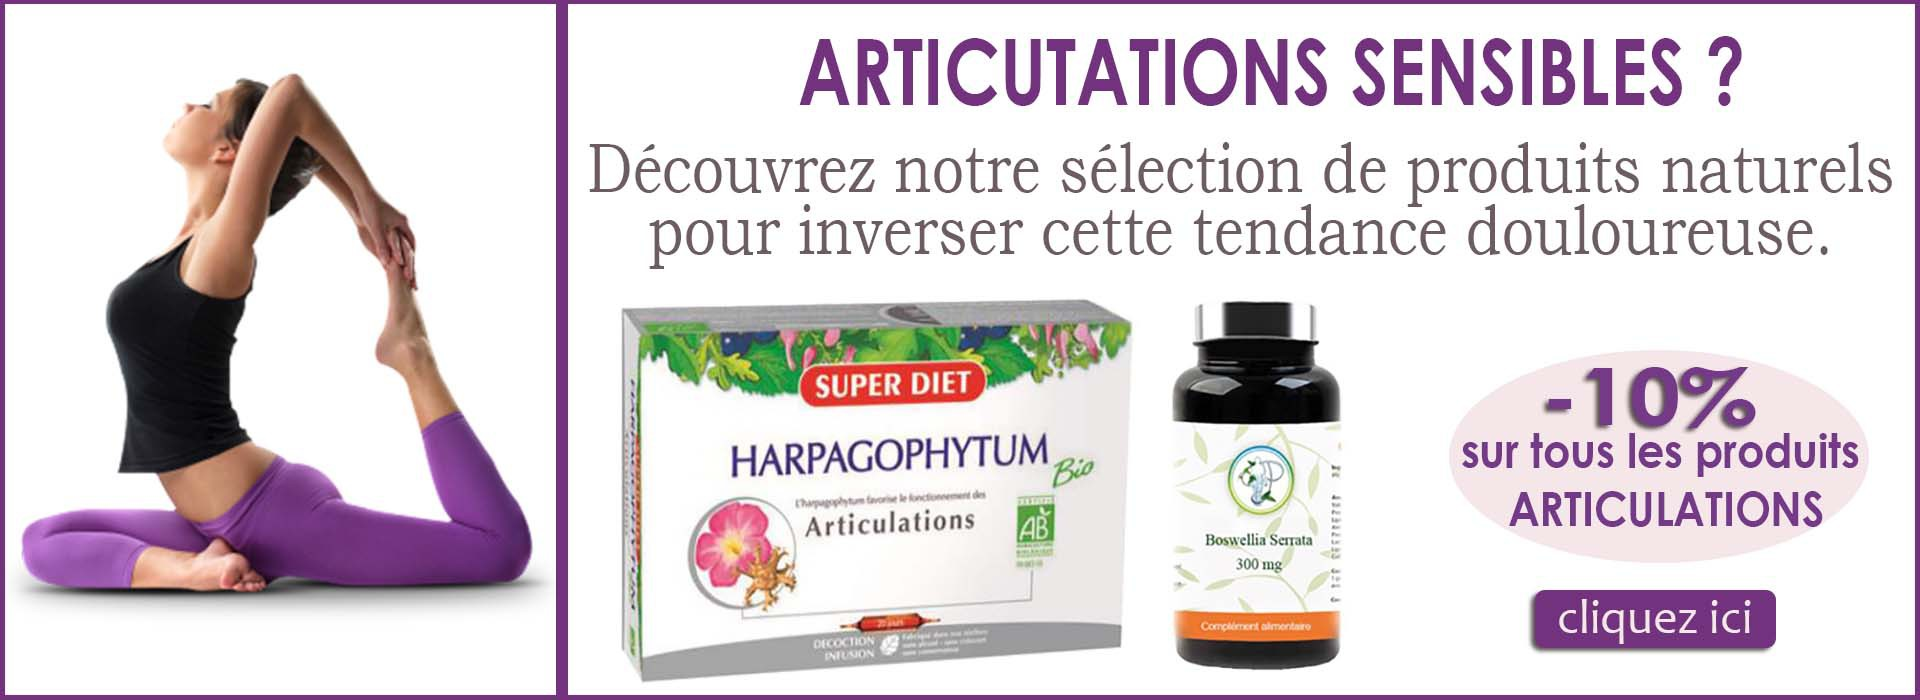 articulations douloureuses